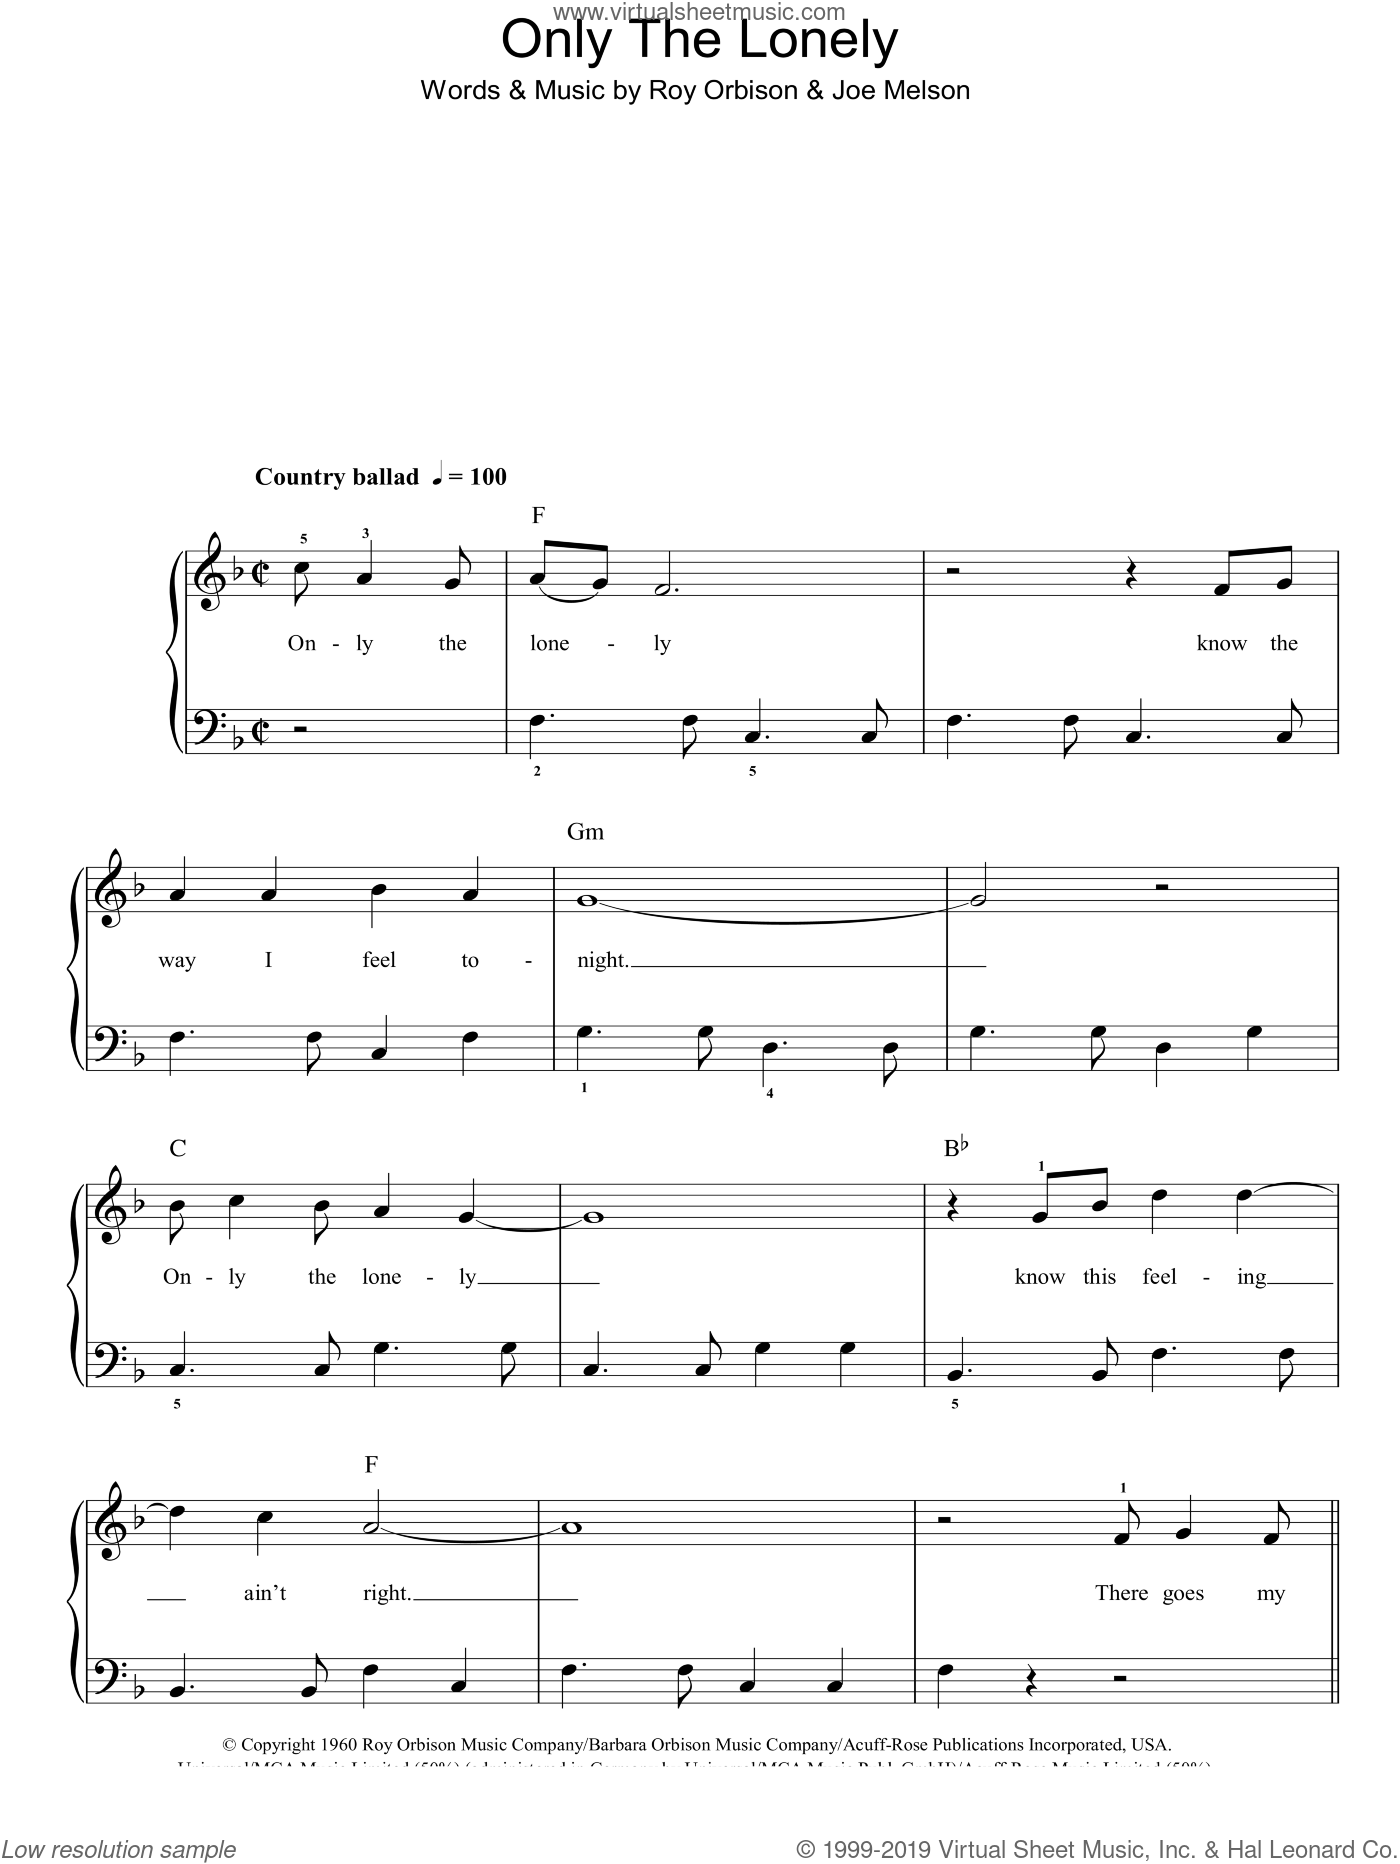 Only The Lonely sheet music for piano solo by Roy Orbison and Joe Melson, easy skill level